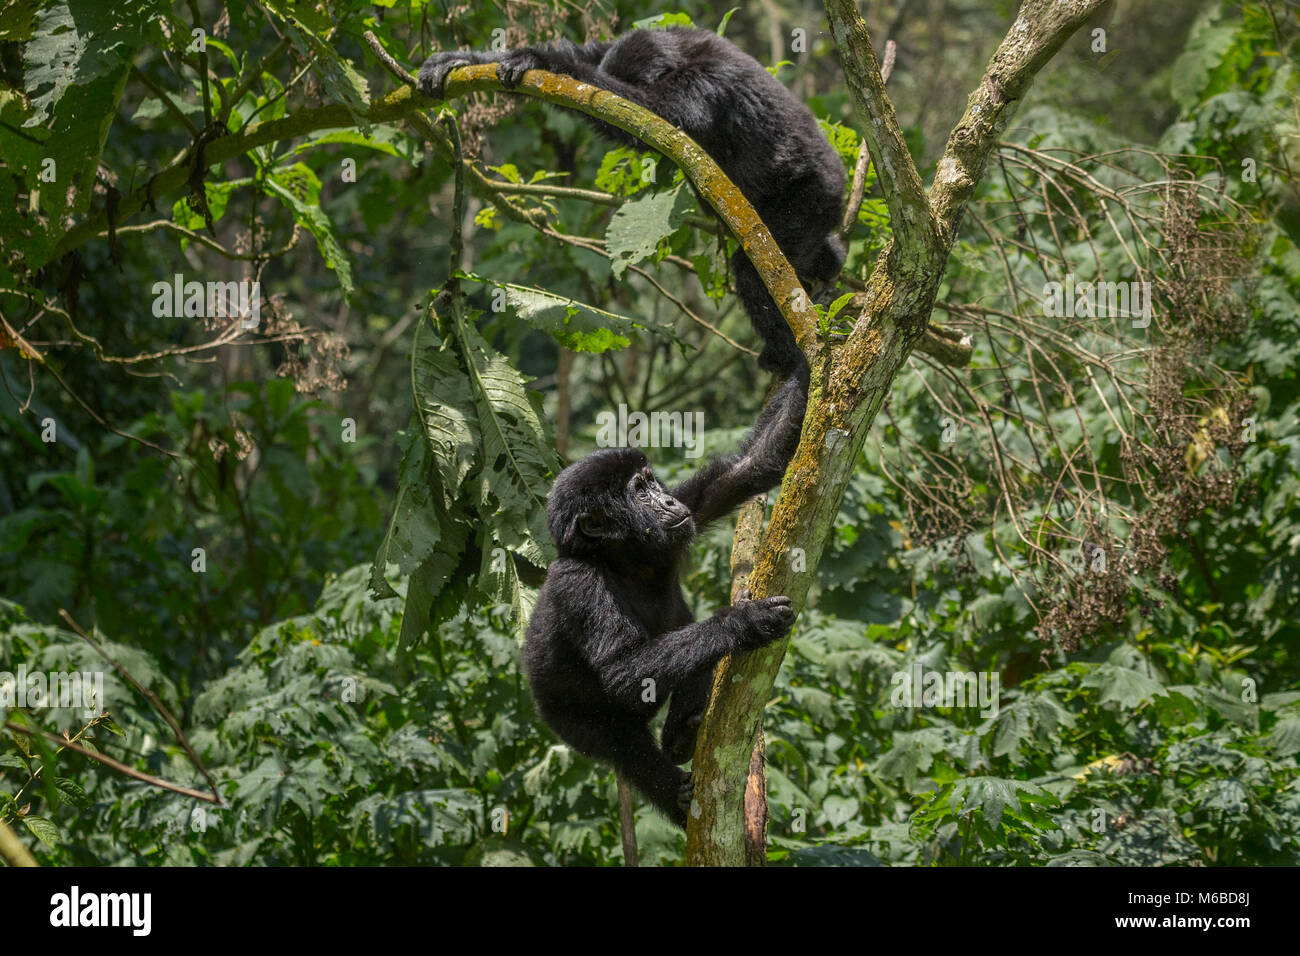 Young Mountain gorilla (Gorilla beringei beringei) is one of the two subspecies of the eastern gorilla. Playing. - Stock Image